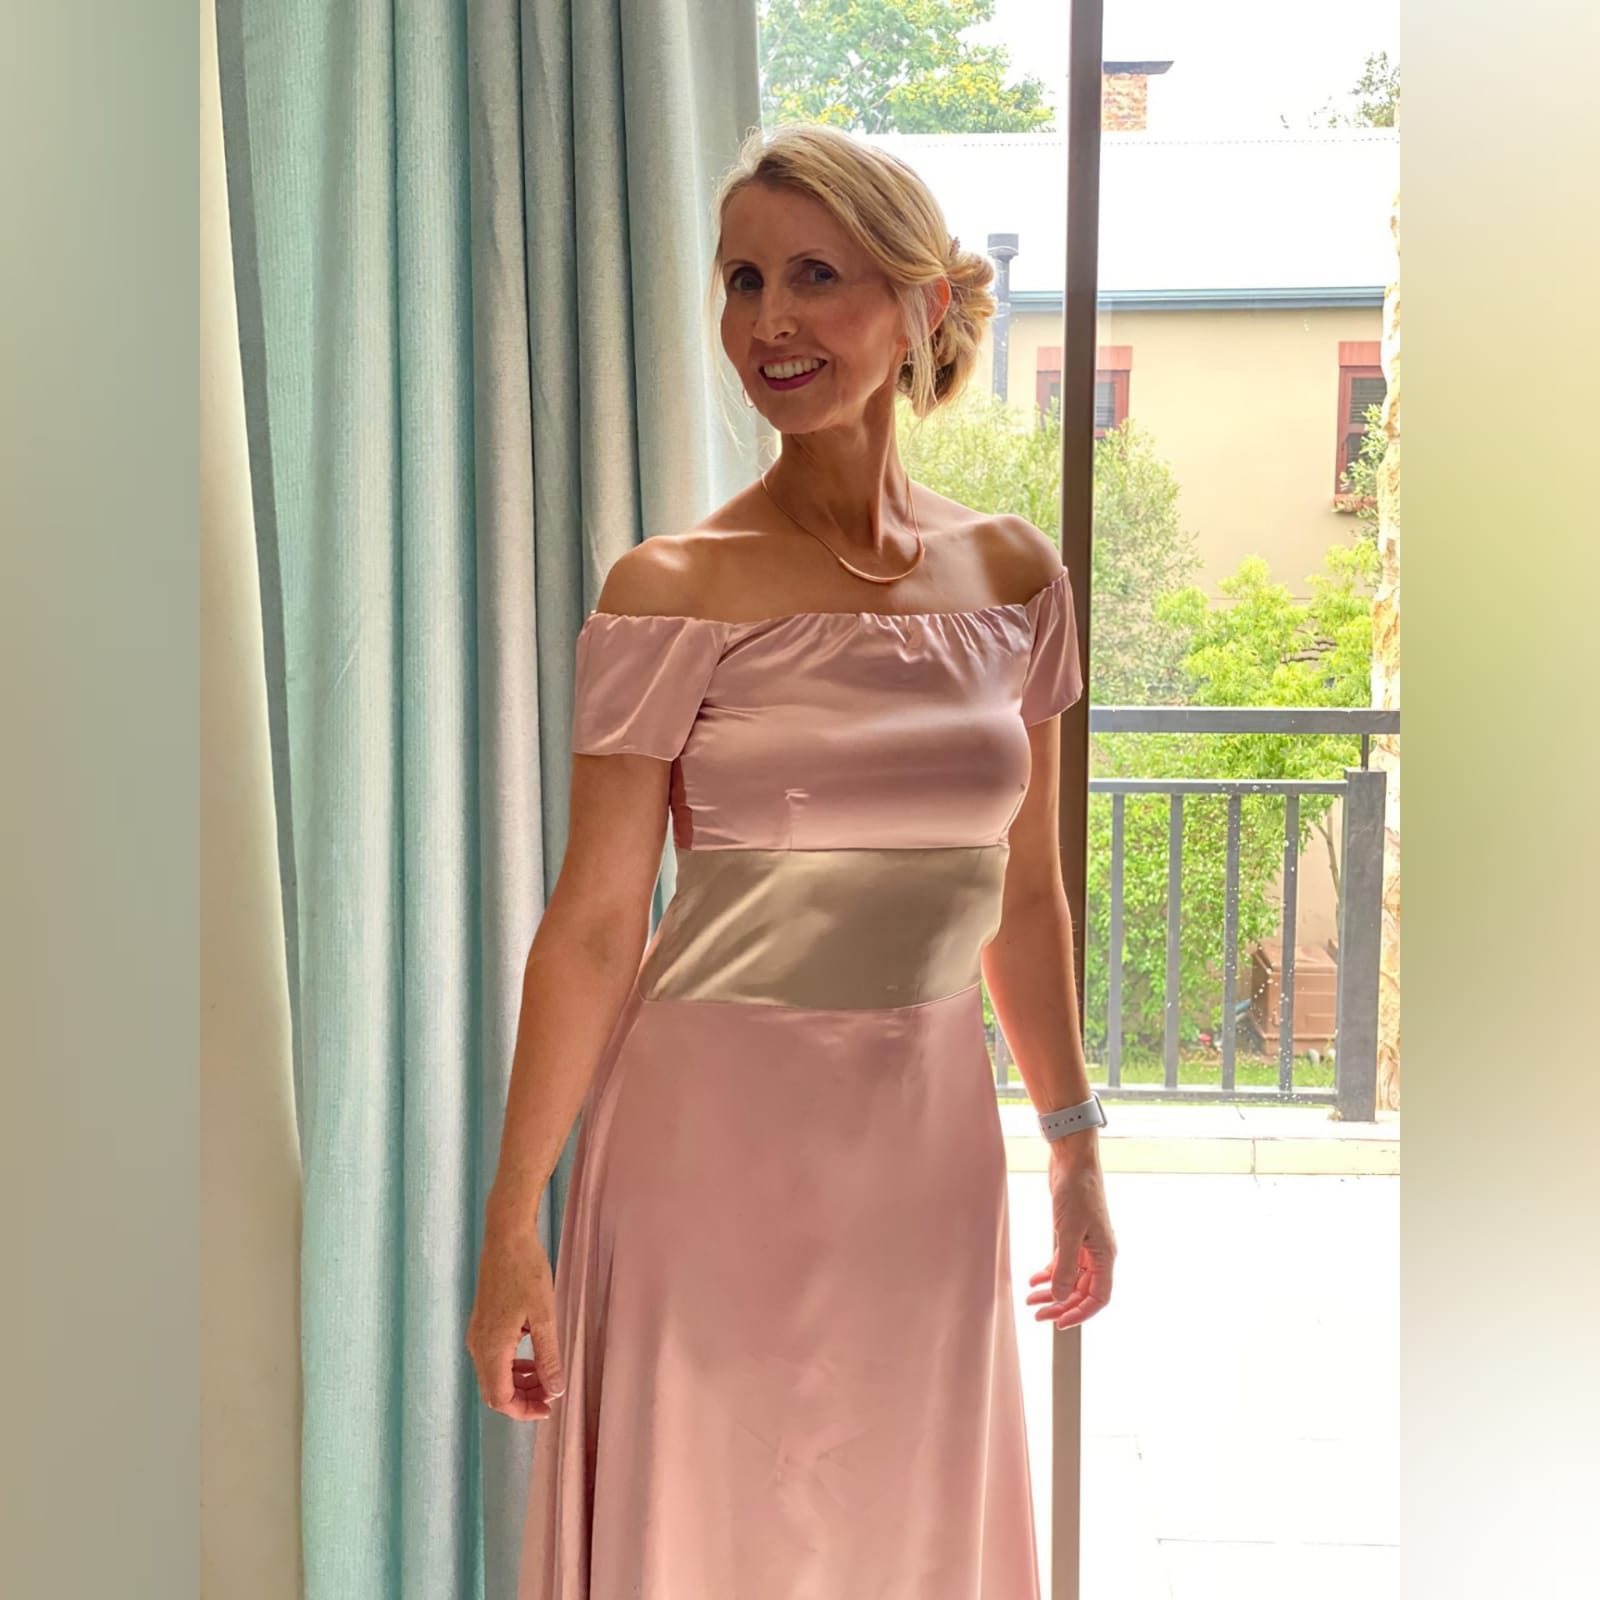 An elegant simple and sophisticated pink and champagne formal dress 2 an elegant, simple and sophisticated pink and champagne formal dress, created for a wedding ceremony. This design was created with a light wear satin, off-shoulder neckline and short sleeves, and a wide champagne belt. Created for a client in south africa.